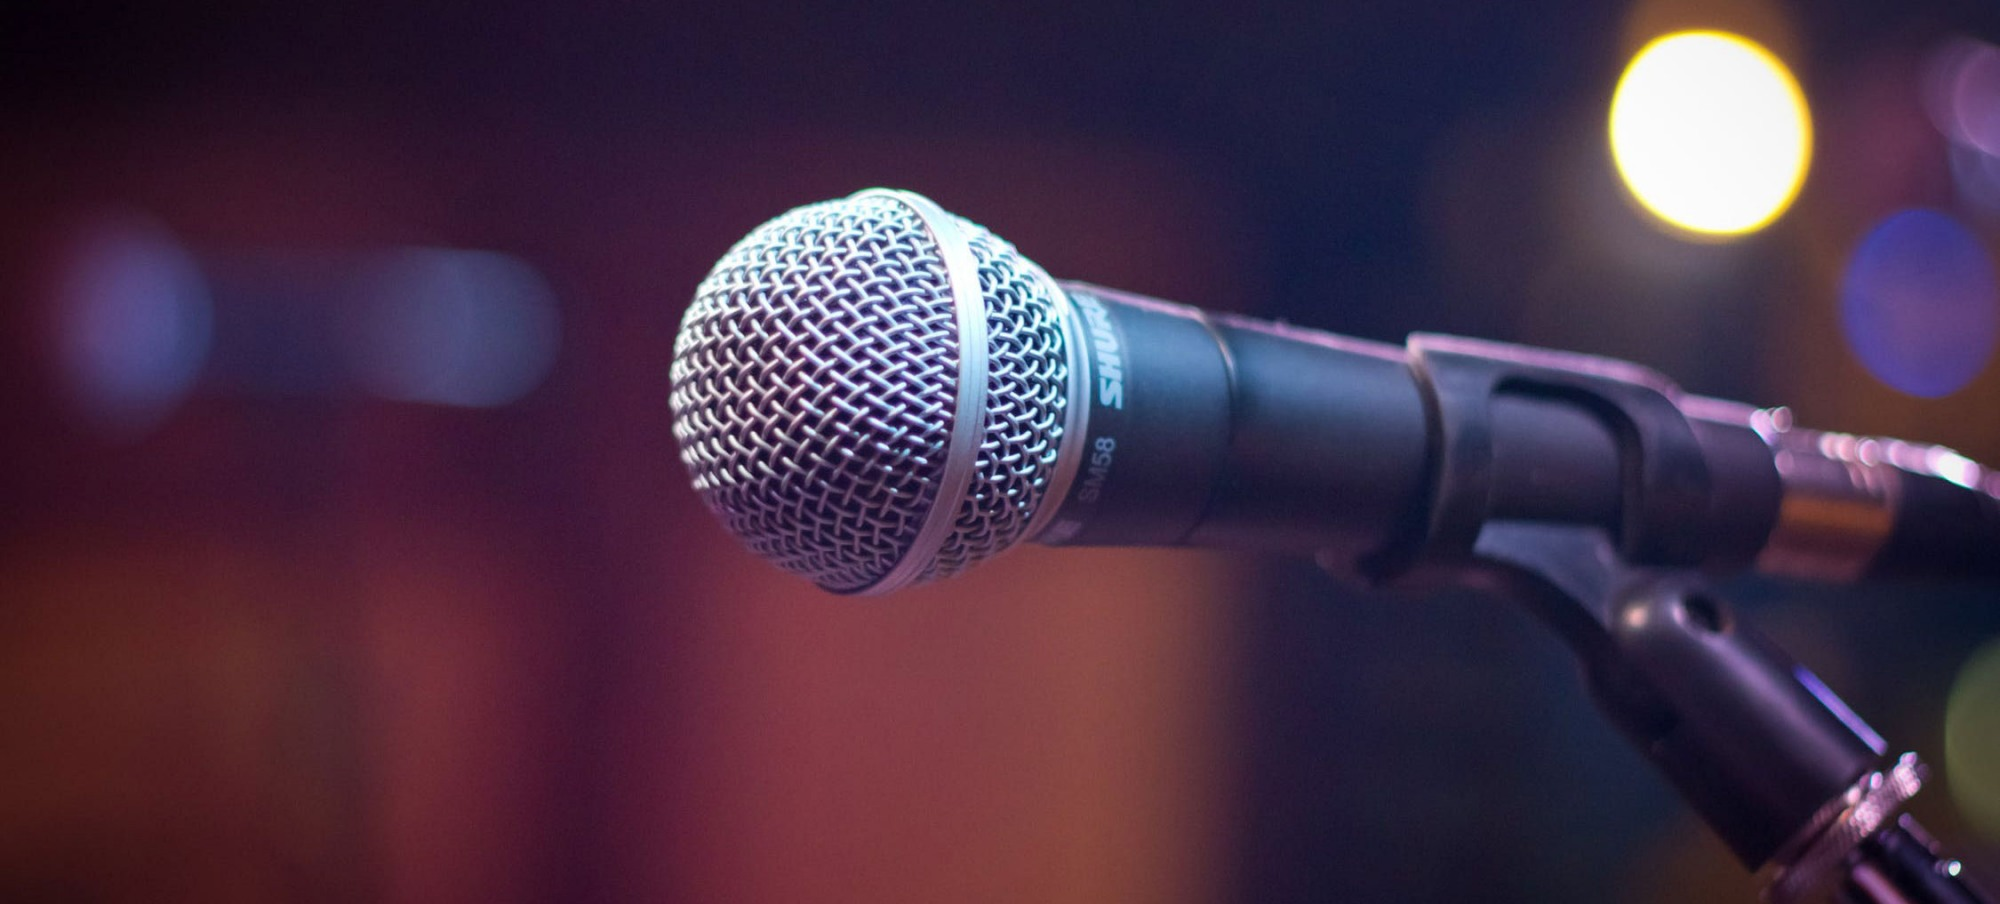 microphone placement tips for